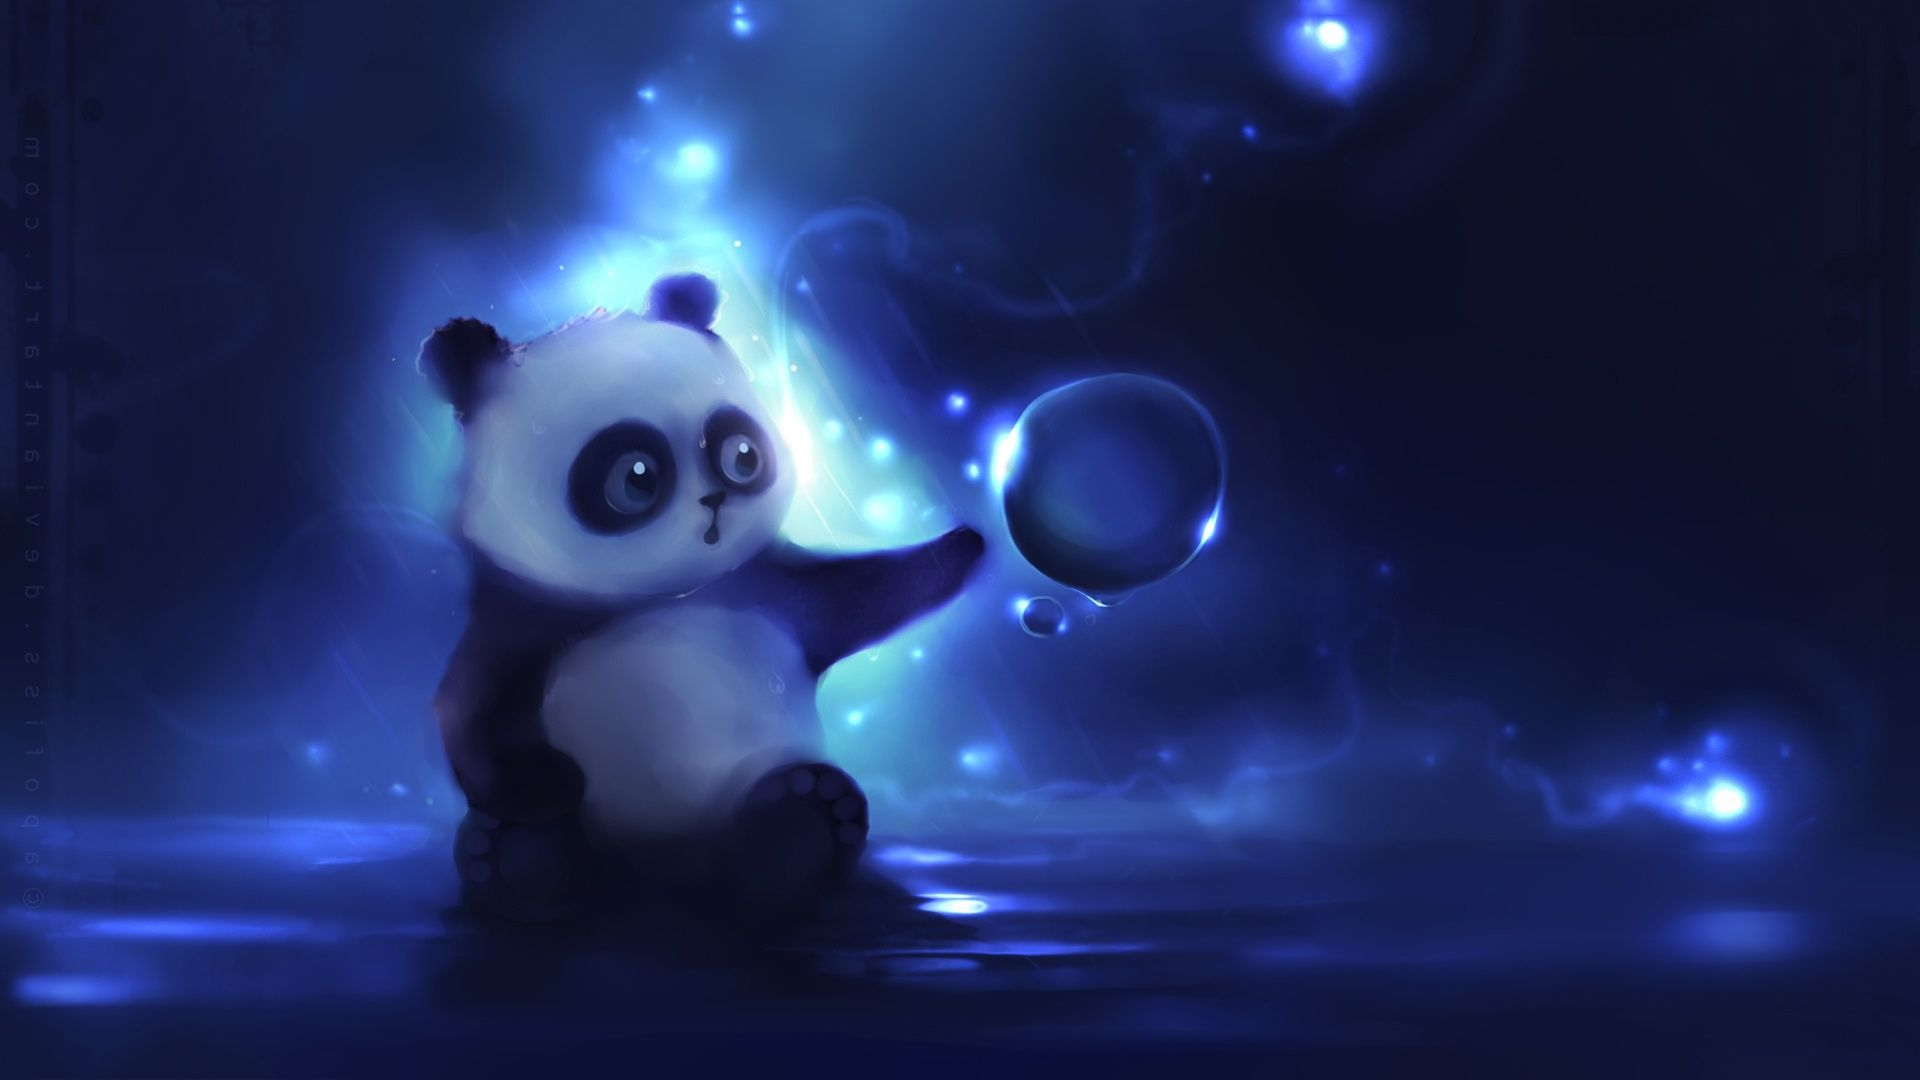 Anime Panda Background Wallpaper 07549 - Baltana